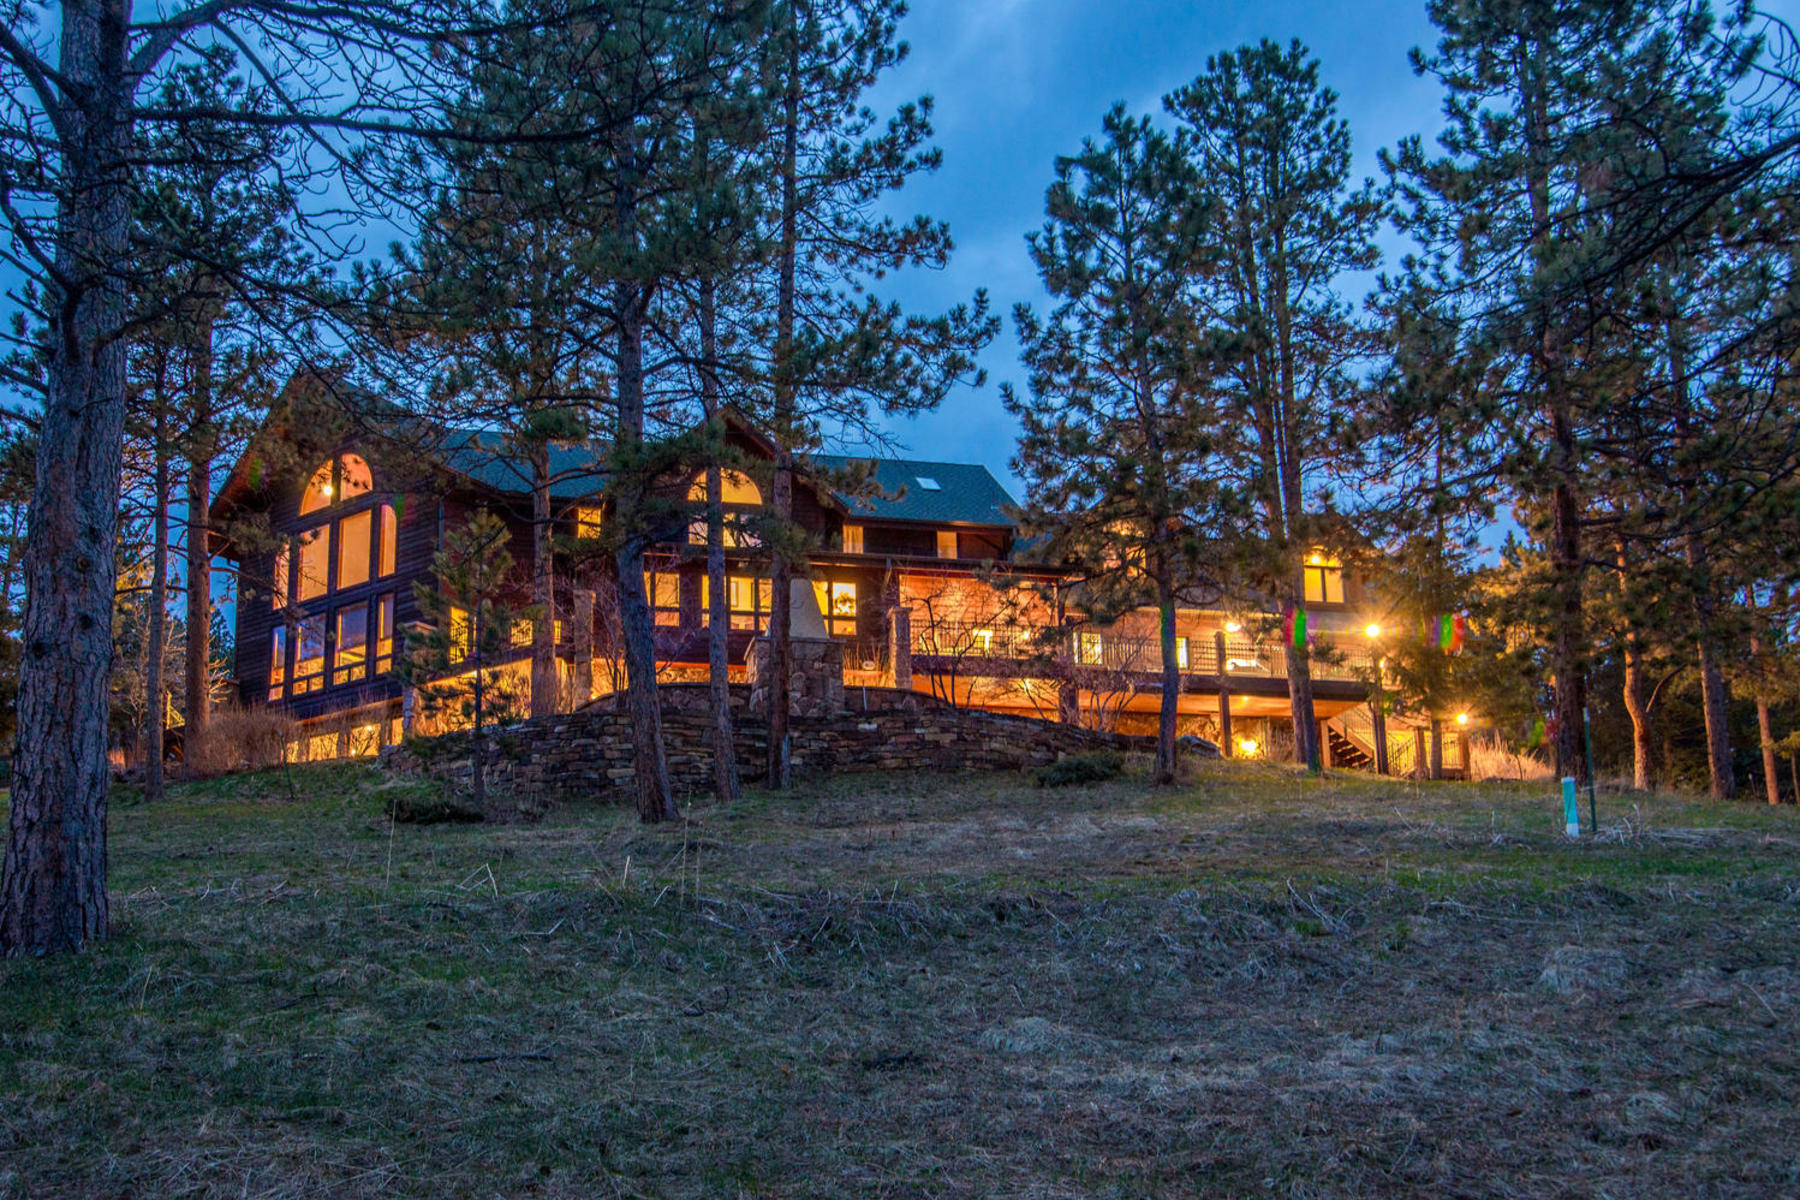 Single Family Home for Sale at Majestic Estate Nestled on 42.42 Acres 28775 Cragmont Drive Evergreen, Colorado 80439 United States